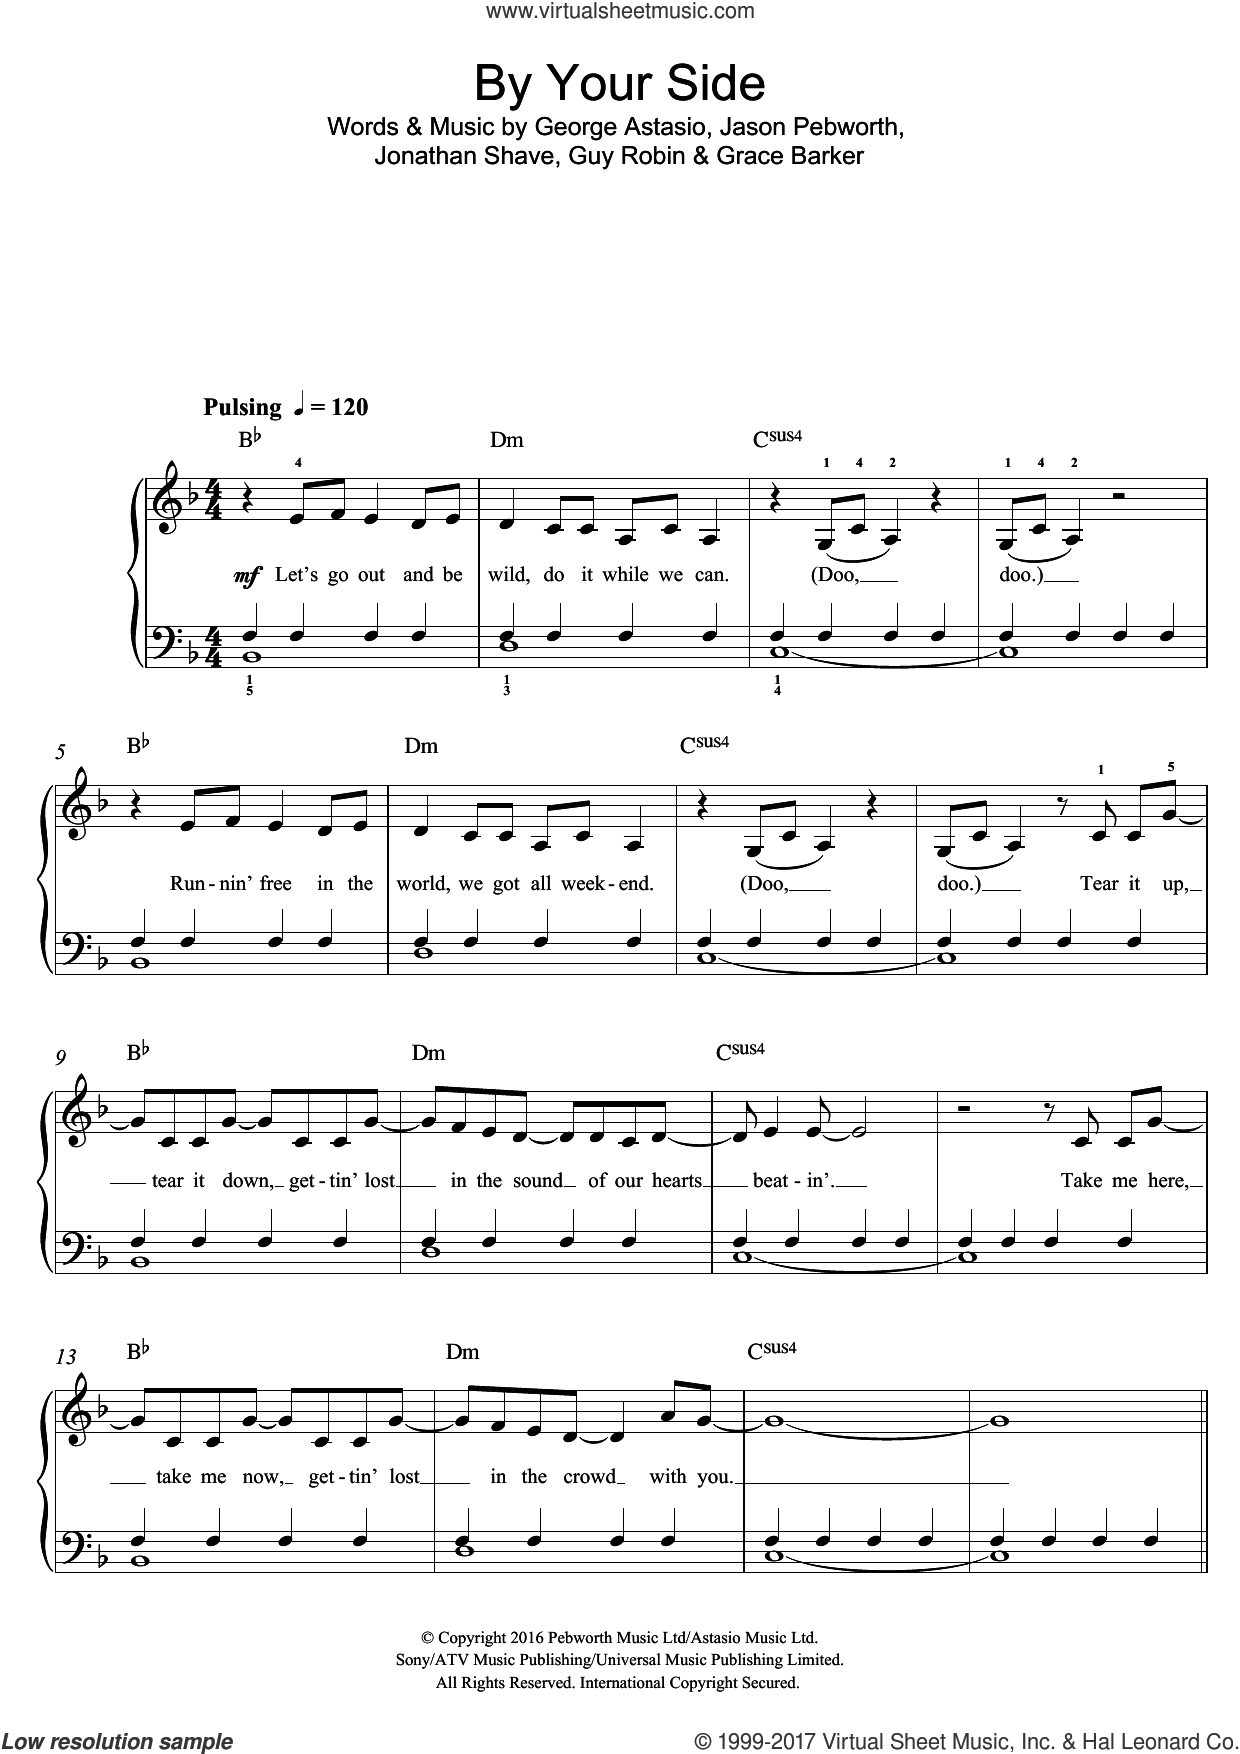 By Your Side (featuring RAYE) sheet music for piano solo (beginners) by Jonas Blue, Don Raye, George Astasio, Grace Barker, Guy Robin, Jason Pebworth and Jonathan Shave, beginner piano (beginners). Score Image Preview.